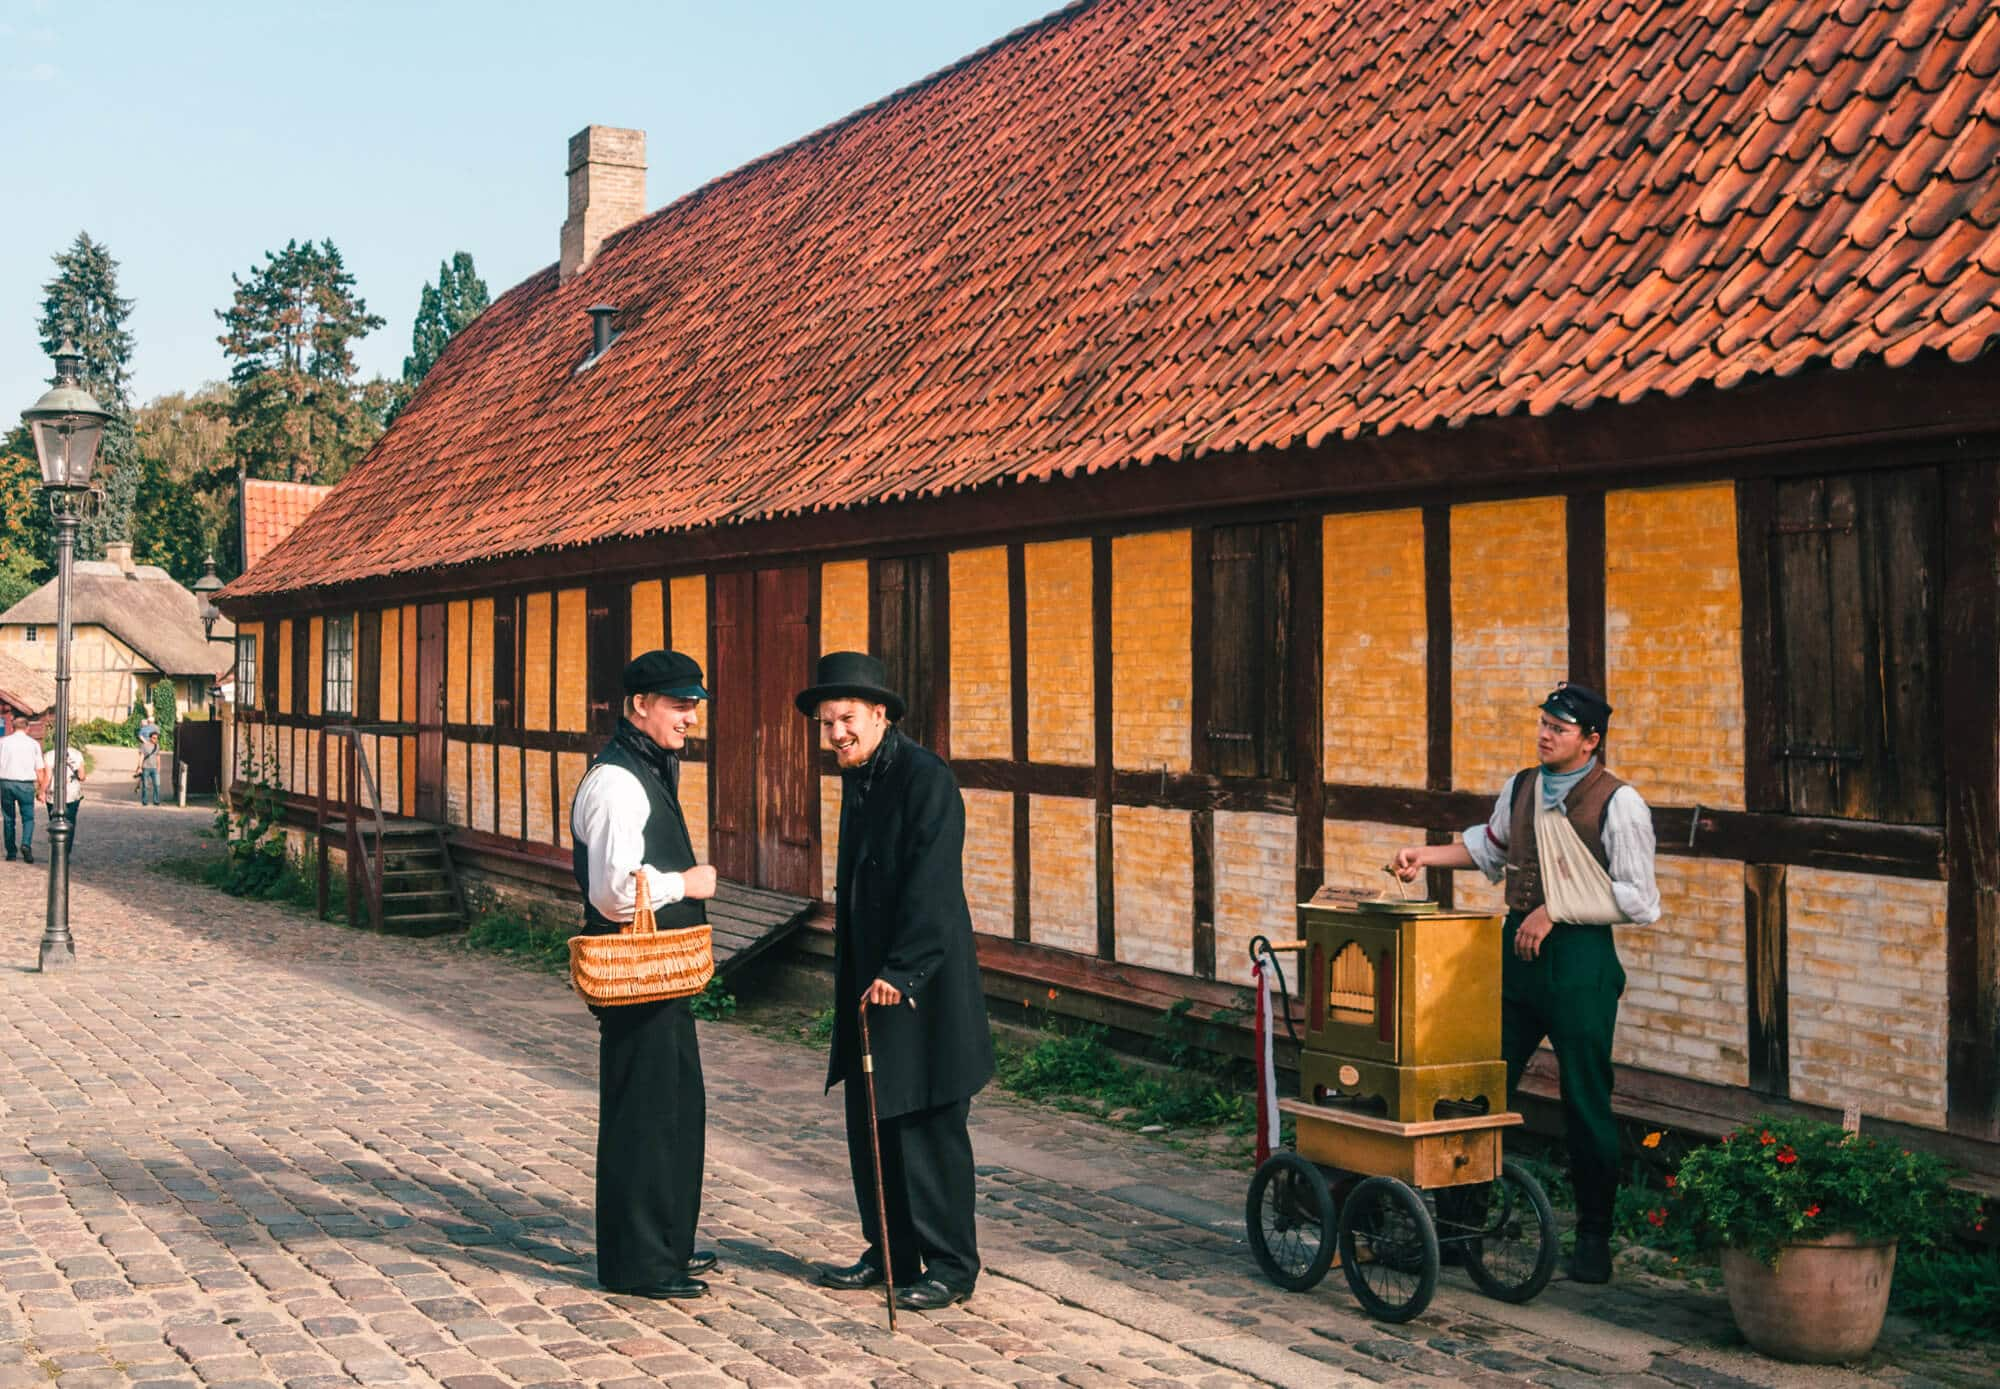 Two days in Aarhus - Denmark's happiest city. Den Gamle By - The coolest museum ever